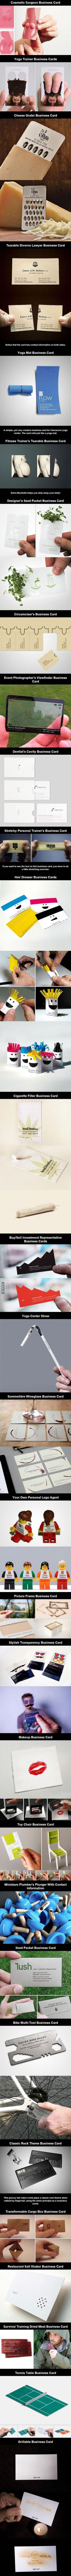 30 Awesome Business Cards